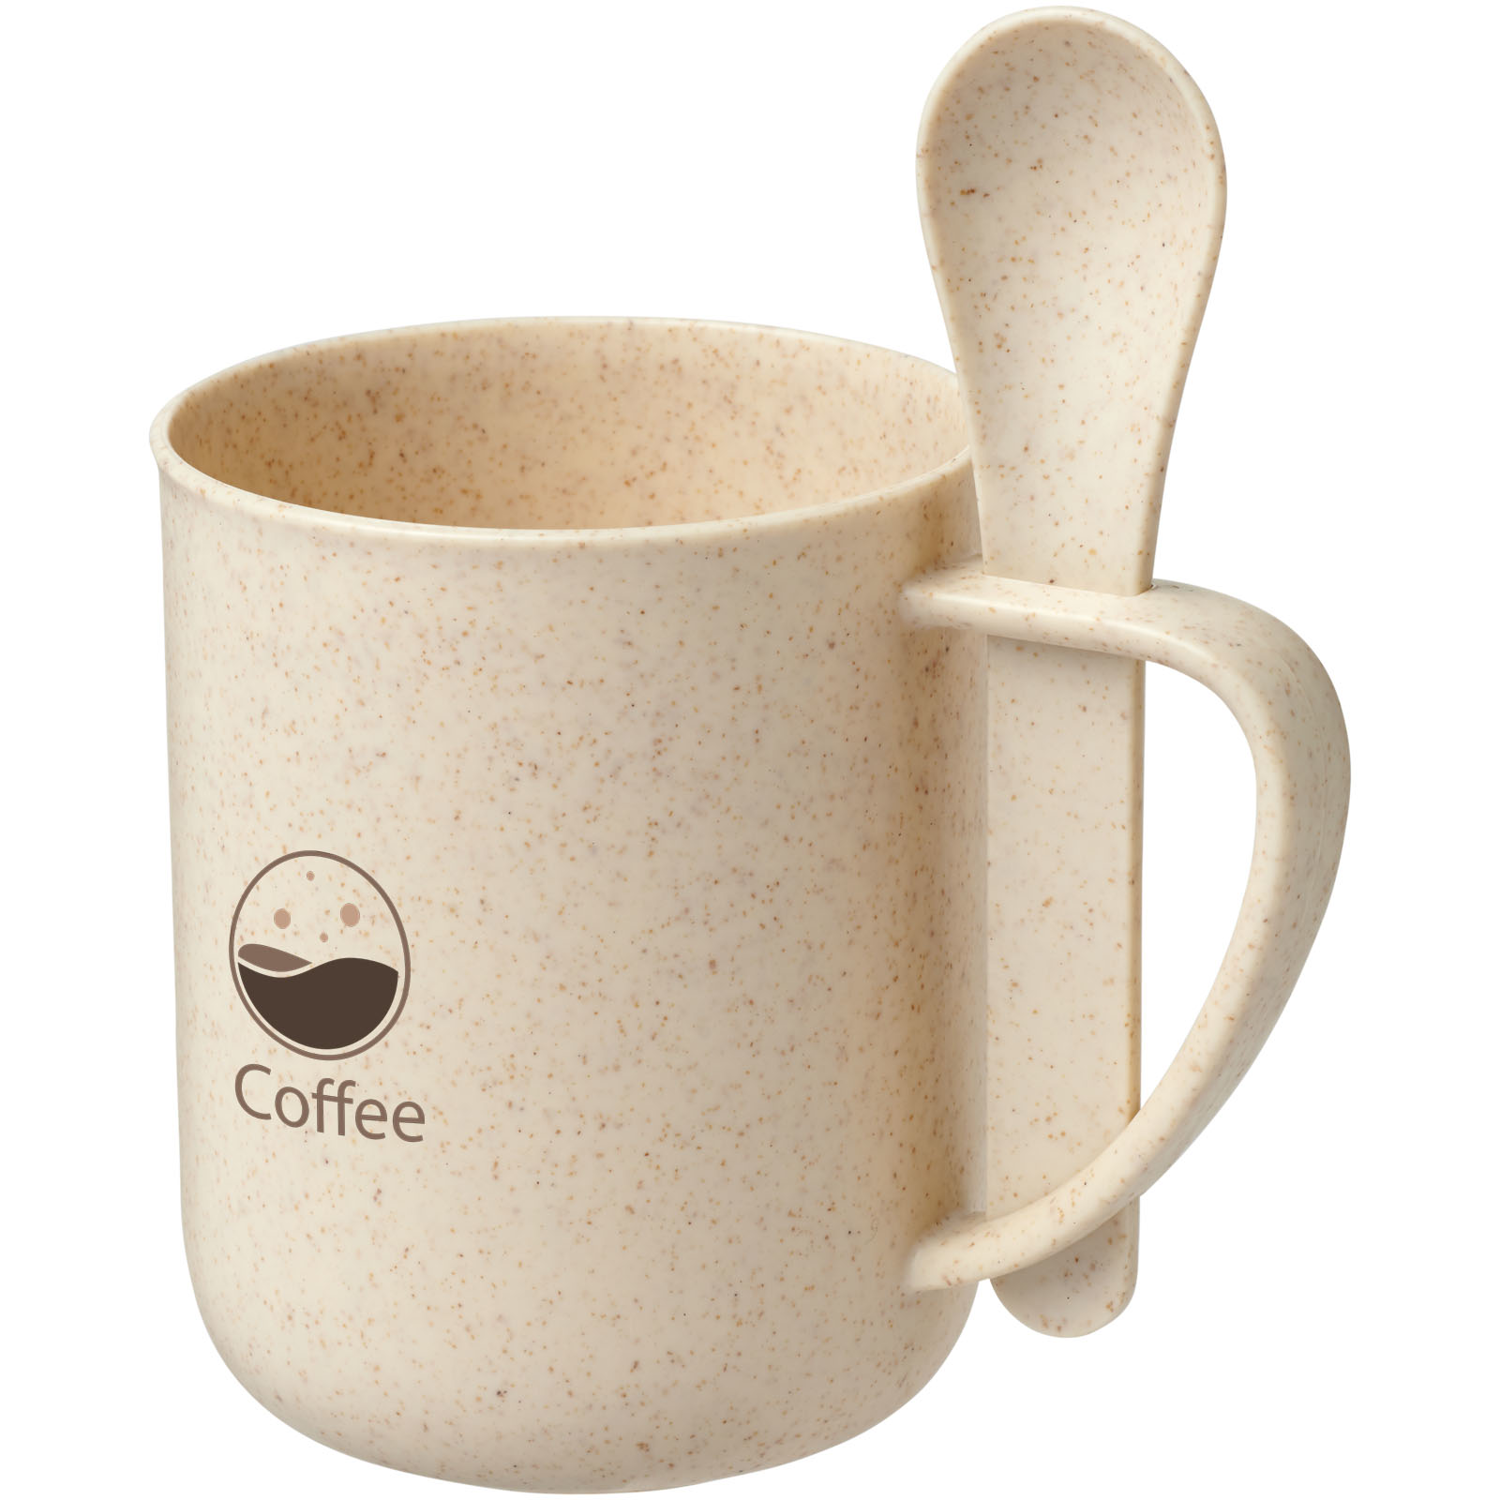 Rye 420 Ml Wheat Straw Mug With Spoon